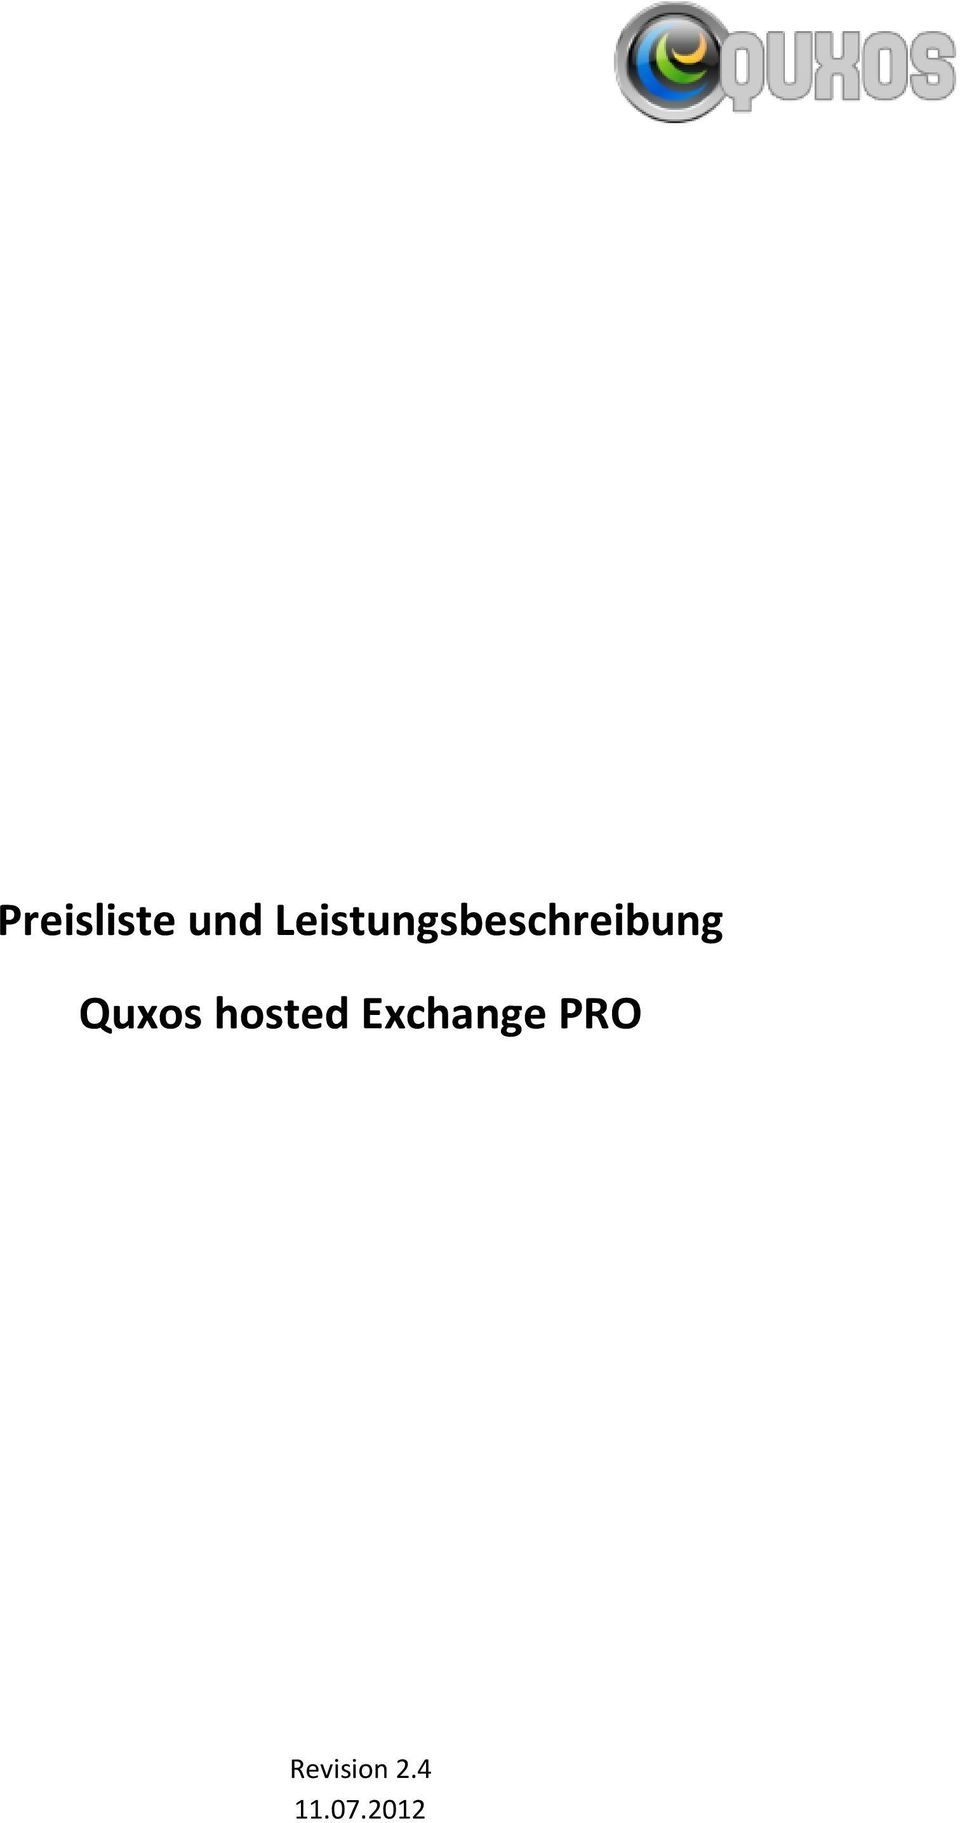 Quxos hosted Exchange